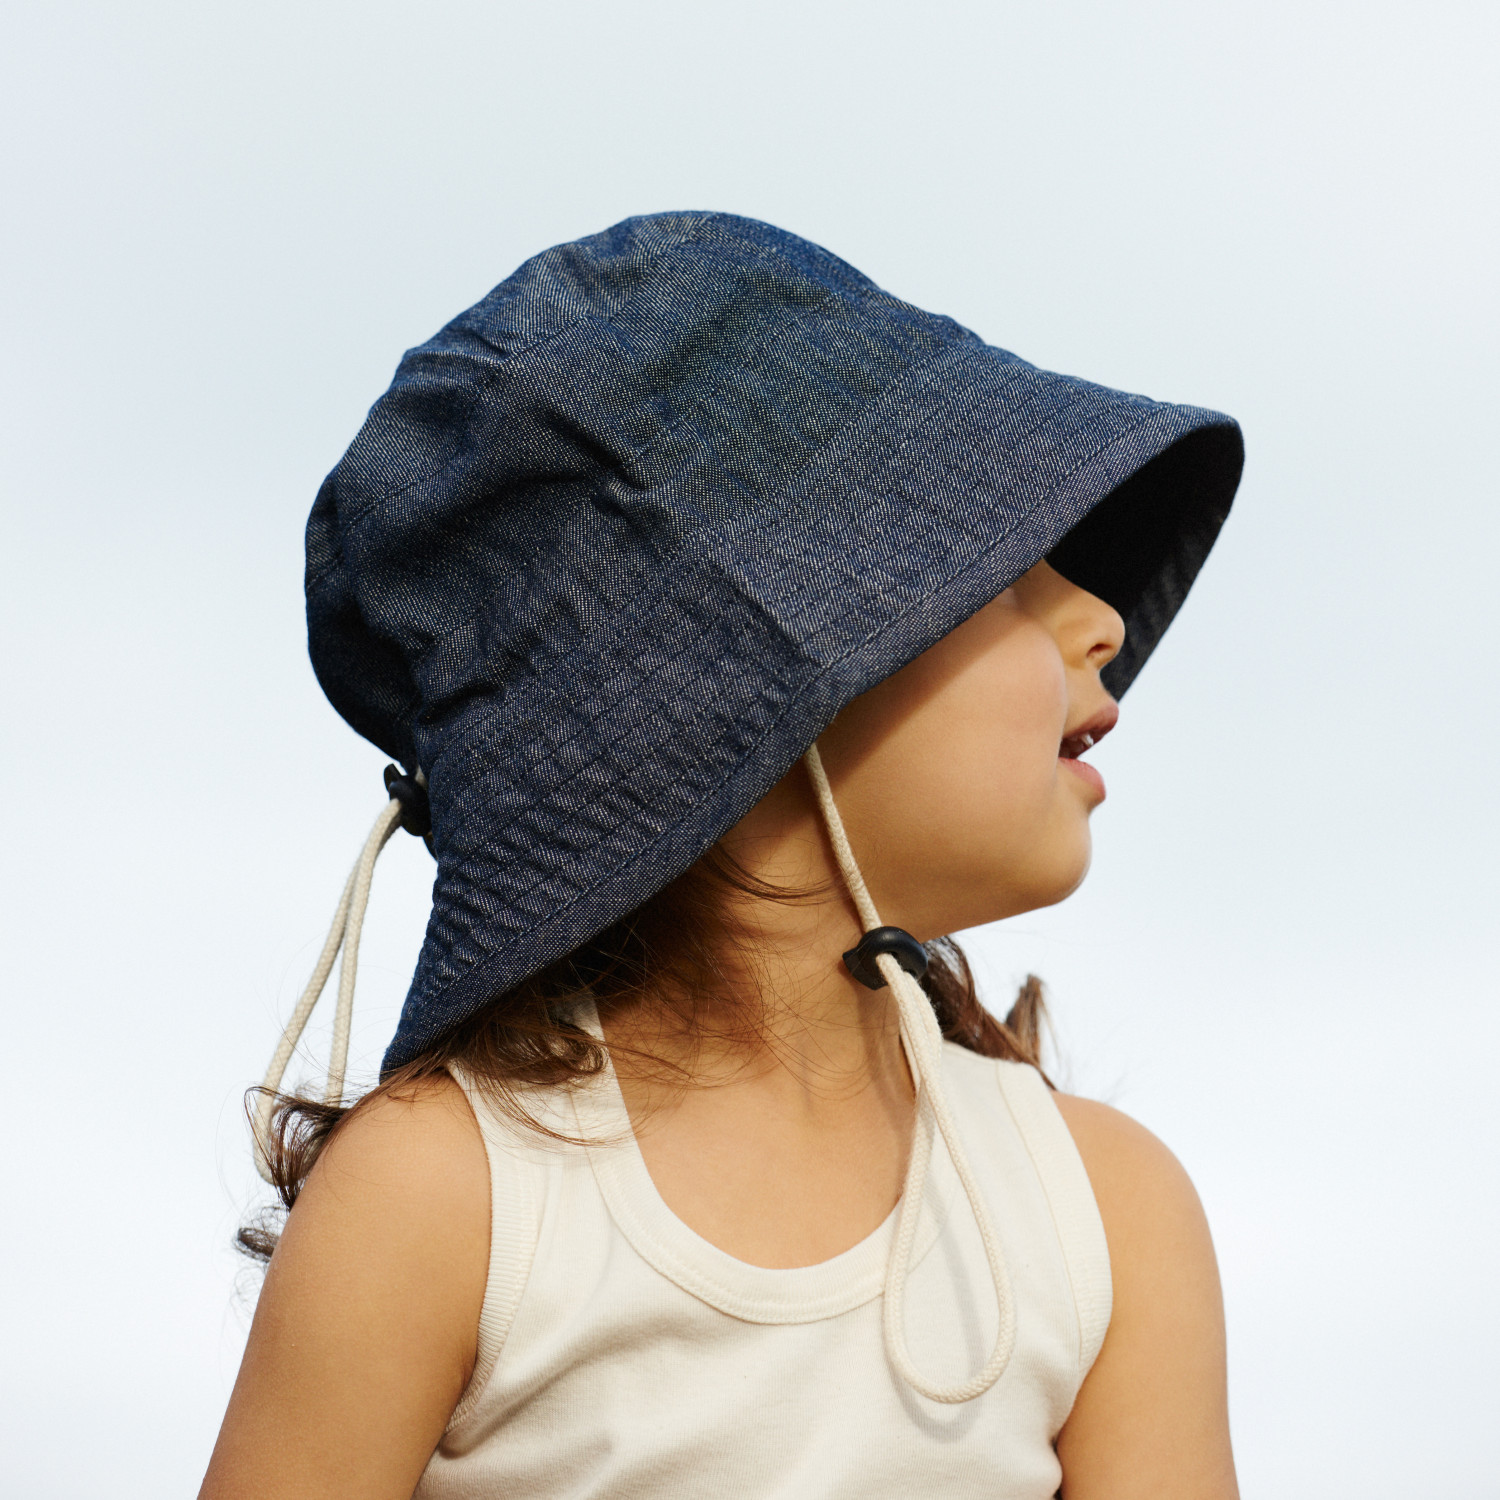 6535629a7ef34 Nature Baby Bucket Sunhat - BABY-Hats and Sunglasses   Bambini - S19 ...